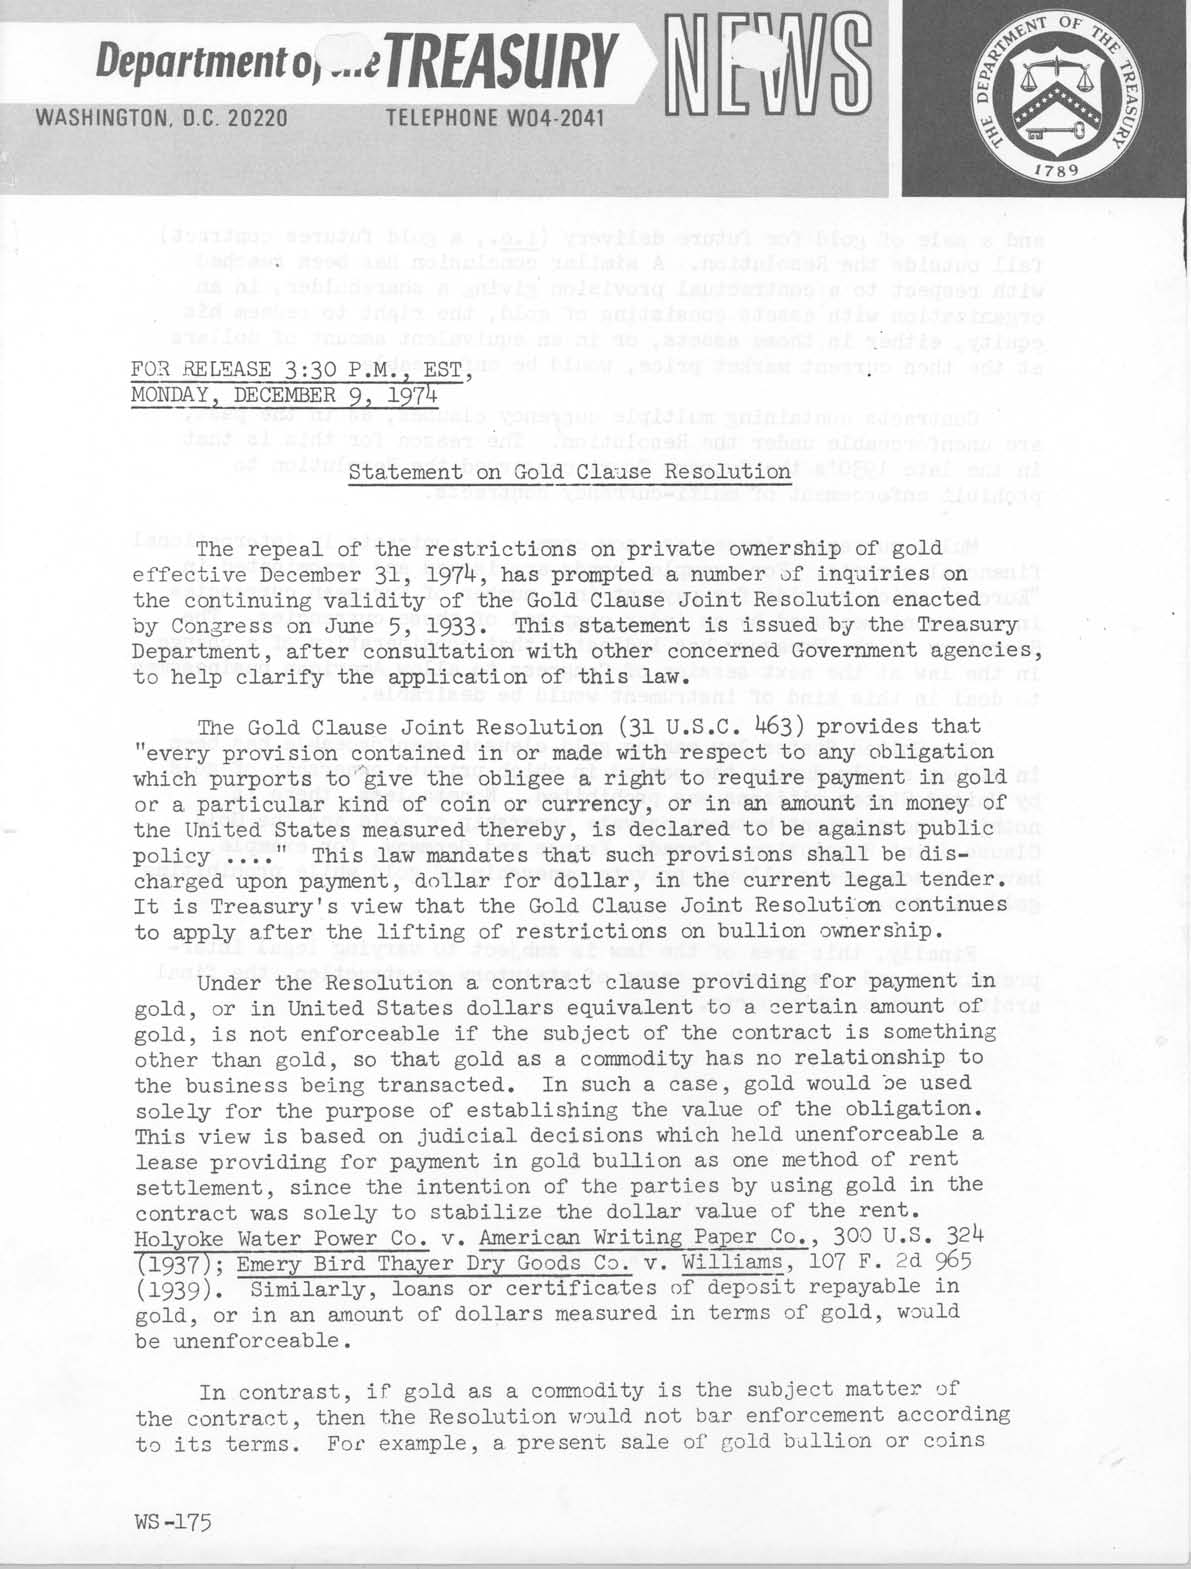 Historic Press Release: Gold Clause Resolution Statement, Page 1